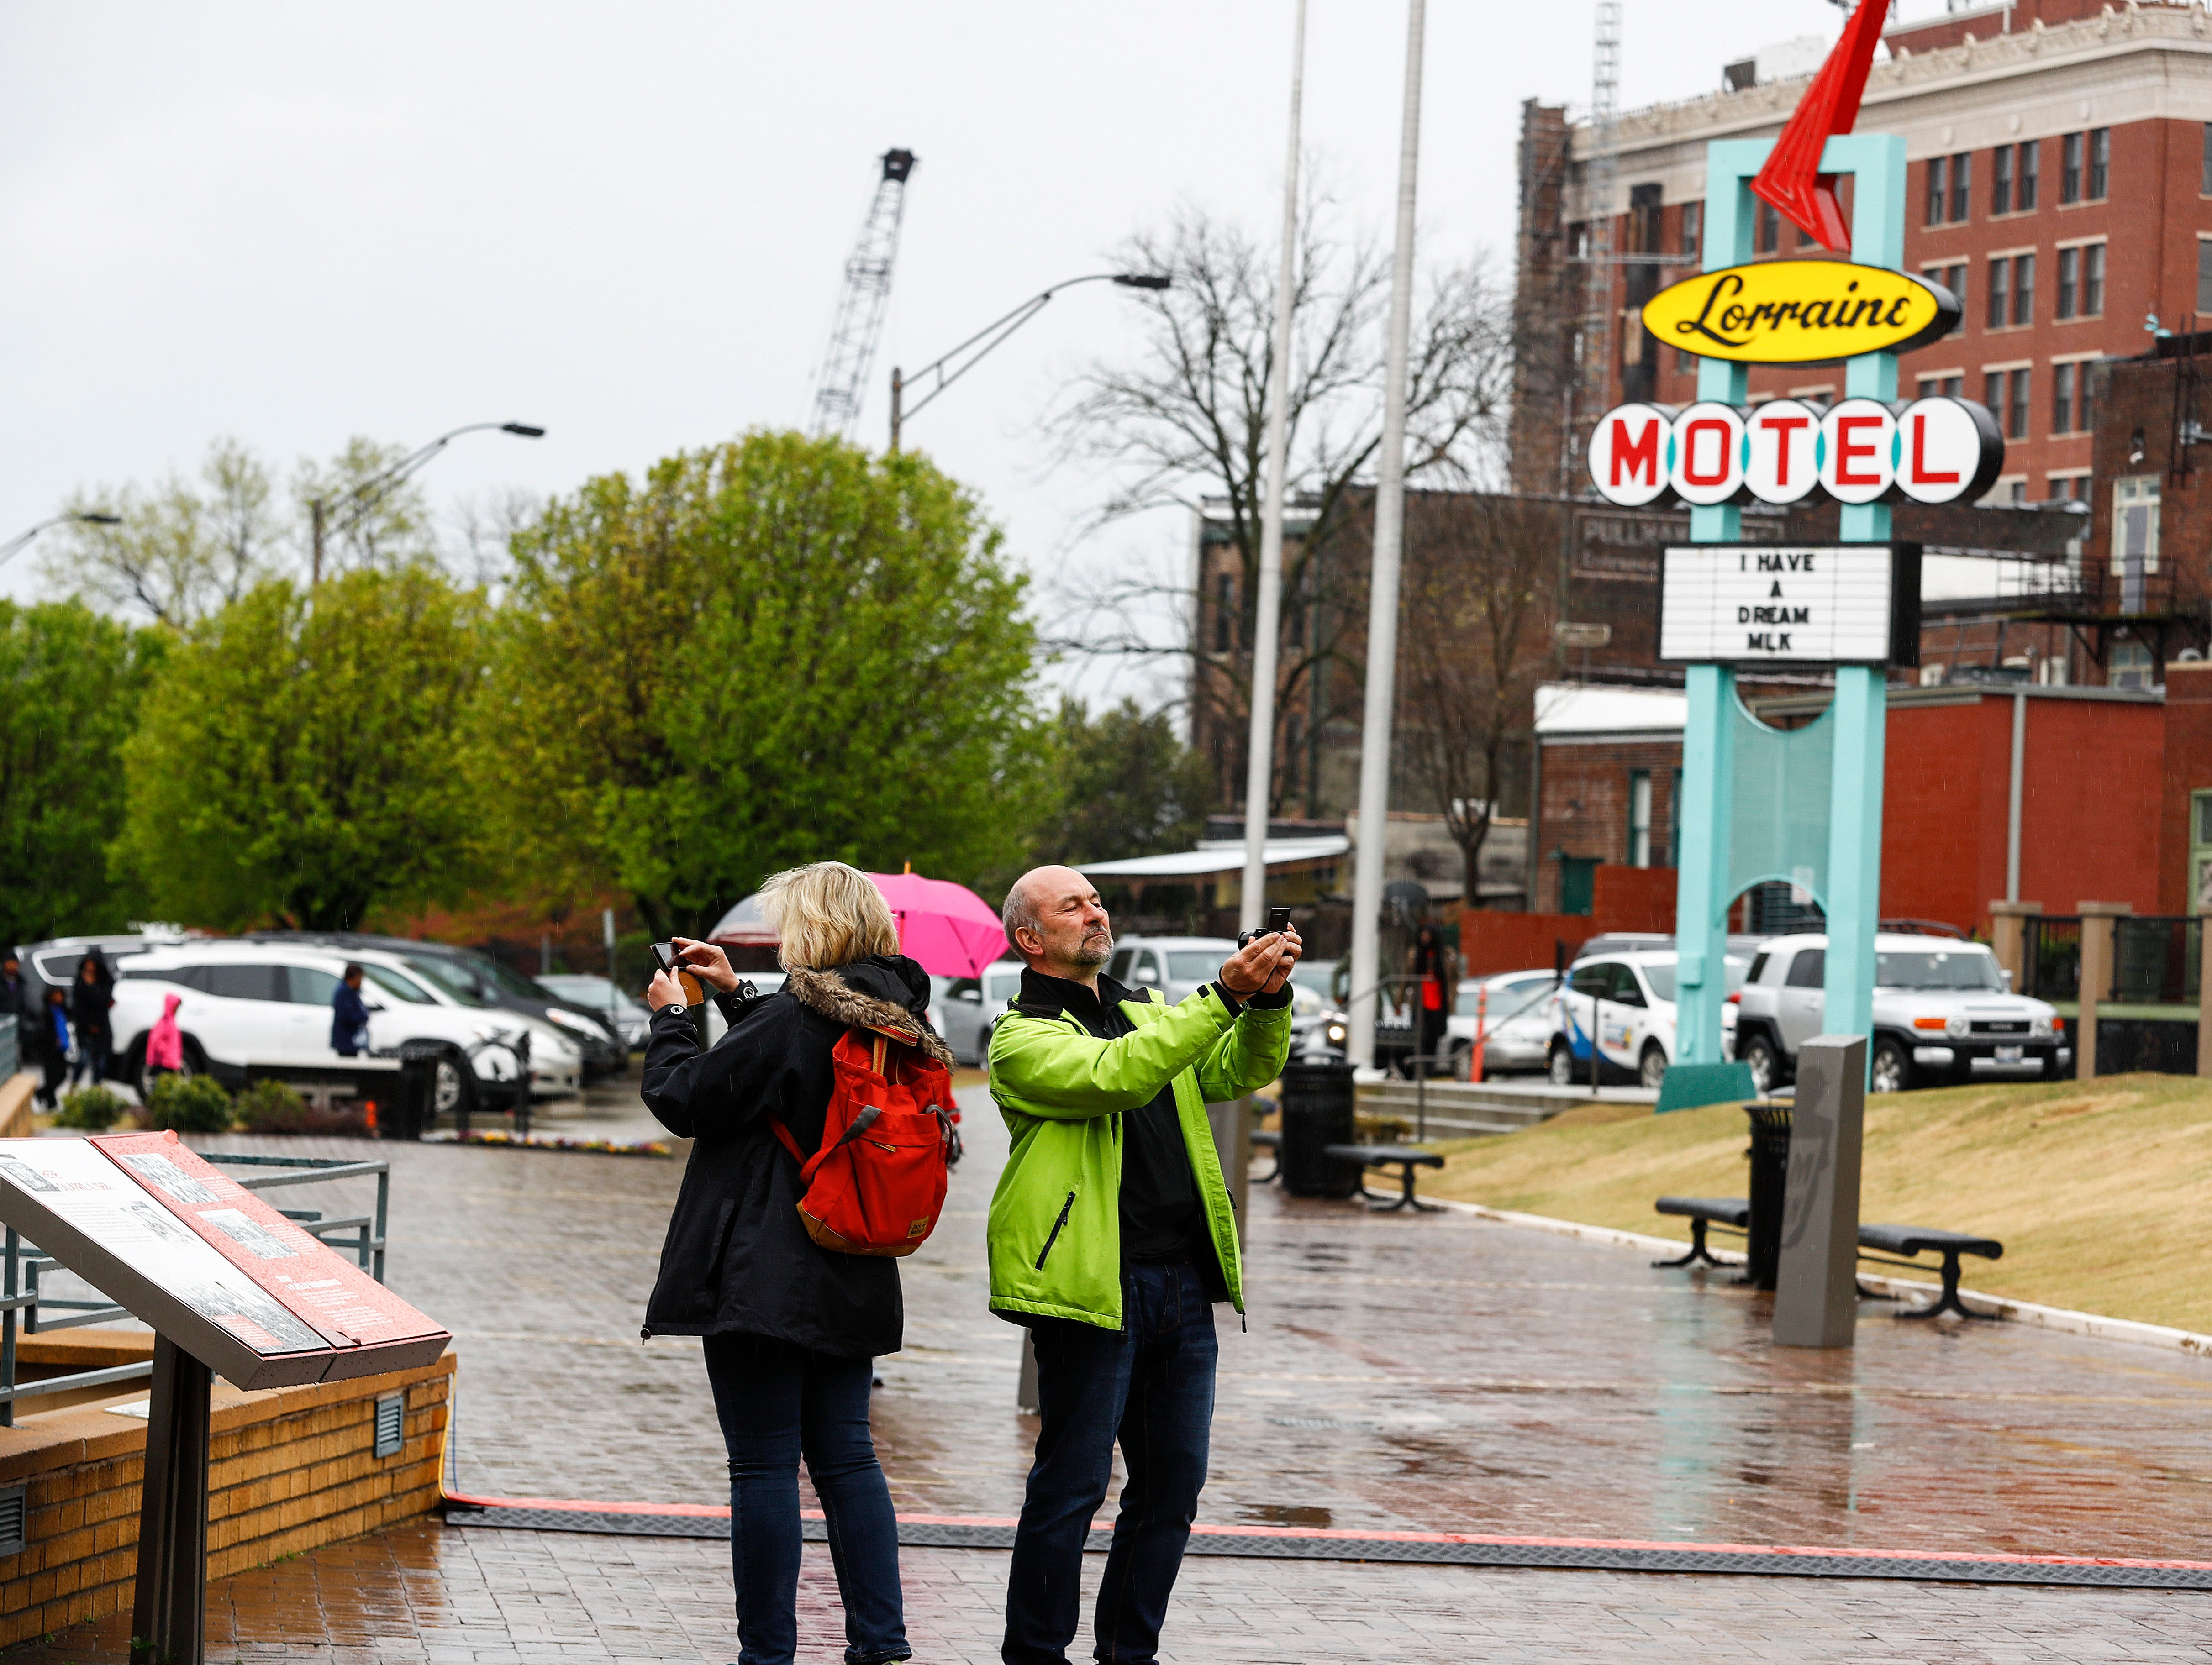 People brave the rain to attend a commemoration ceremony at the National Civil Rights Museum on April 4, 2019, on the 51st anniversary of Dr. Martin Luther King, Jr.'s assassination.